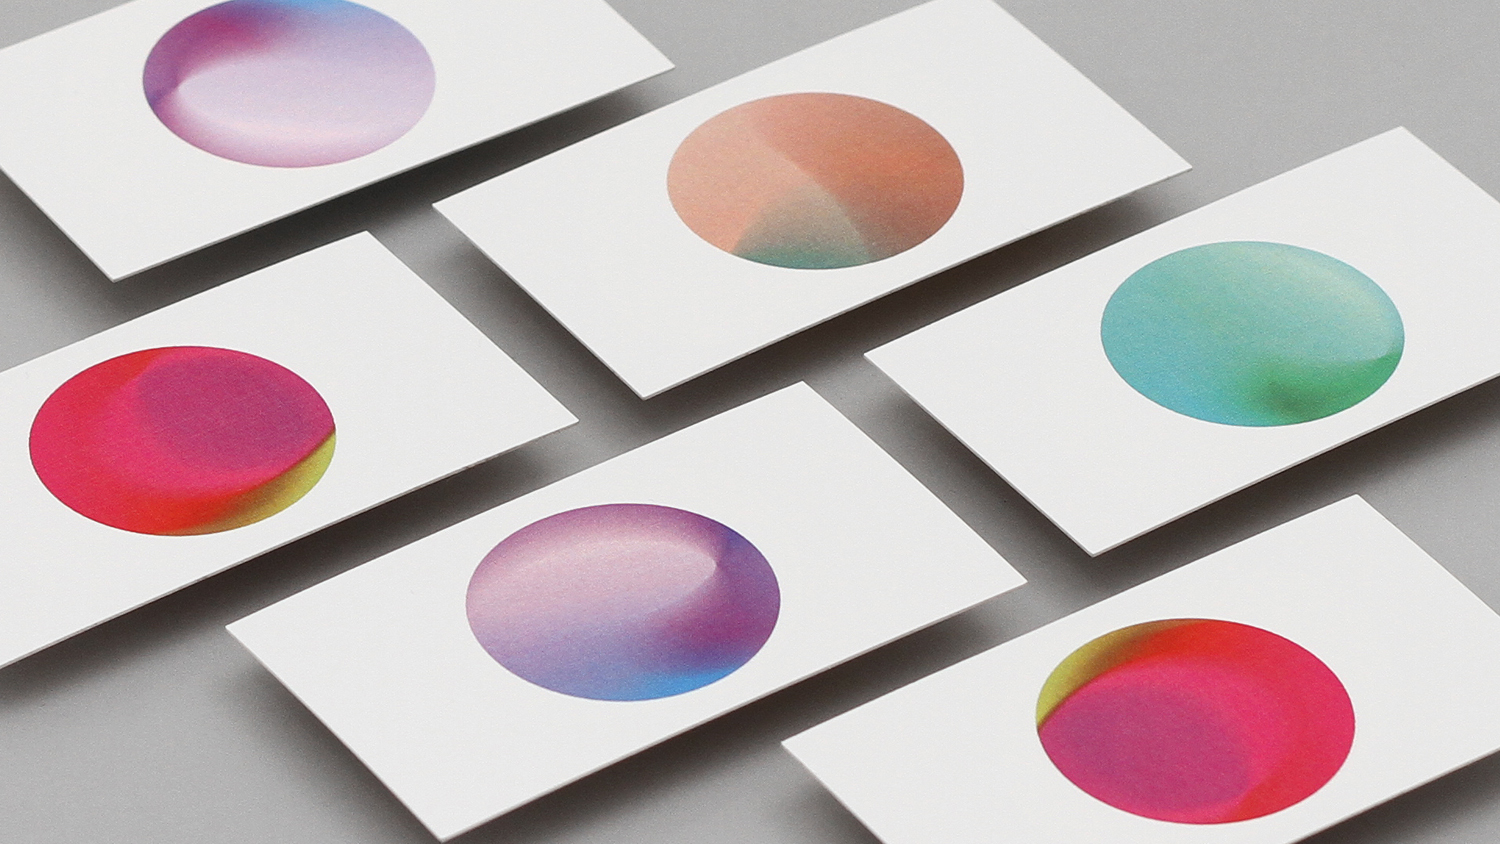 Brand identity and business cards for New York based co-working and wellness concept Primary designed by DIA